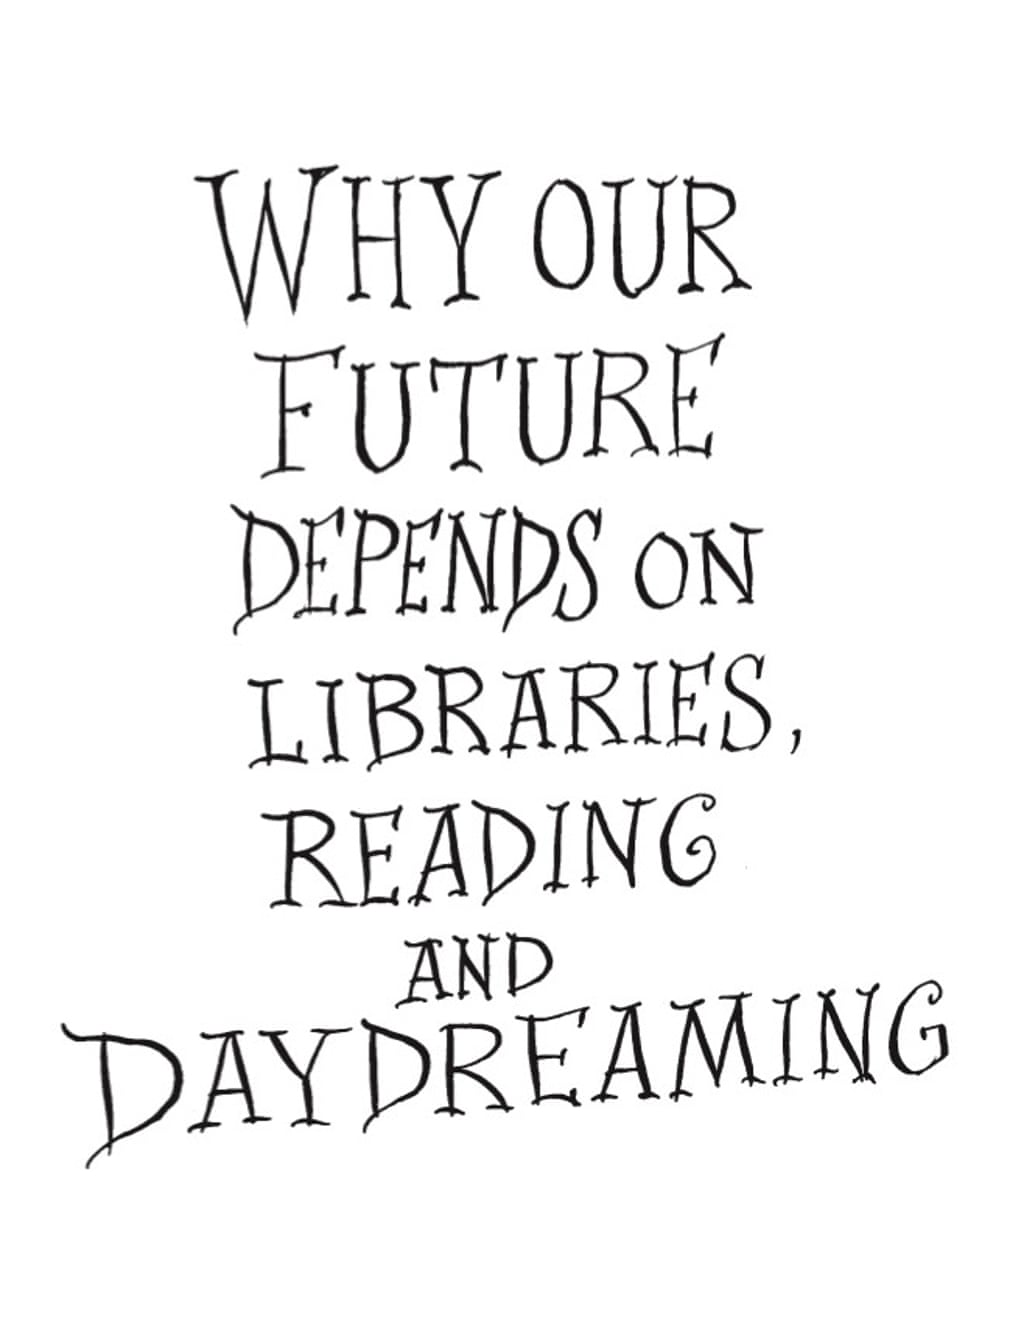 Neil Gaiman And Chris Riddell On Why We Need Libraries – An Essay In Pictures for The Guardian